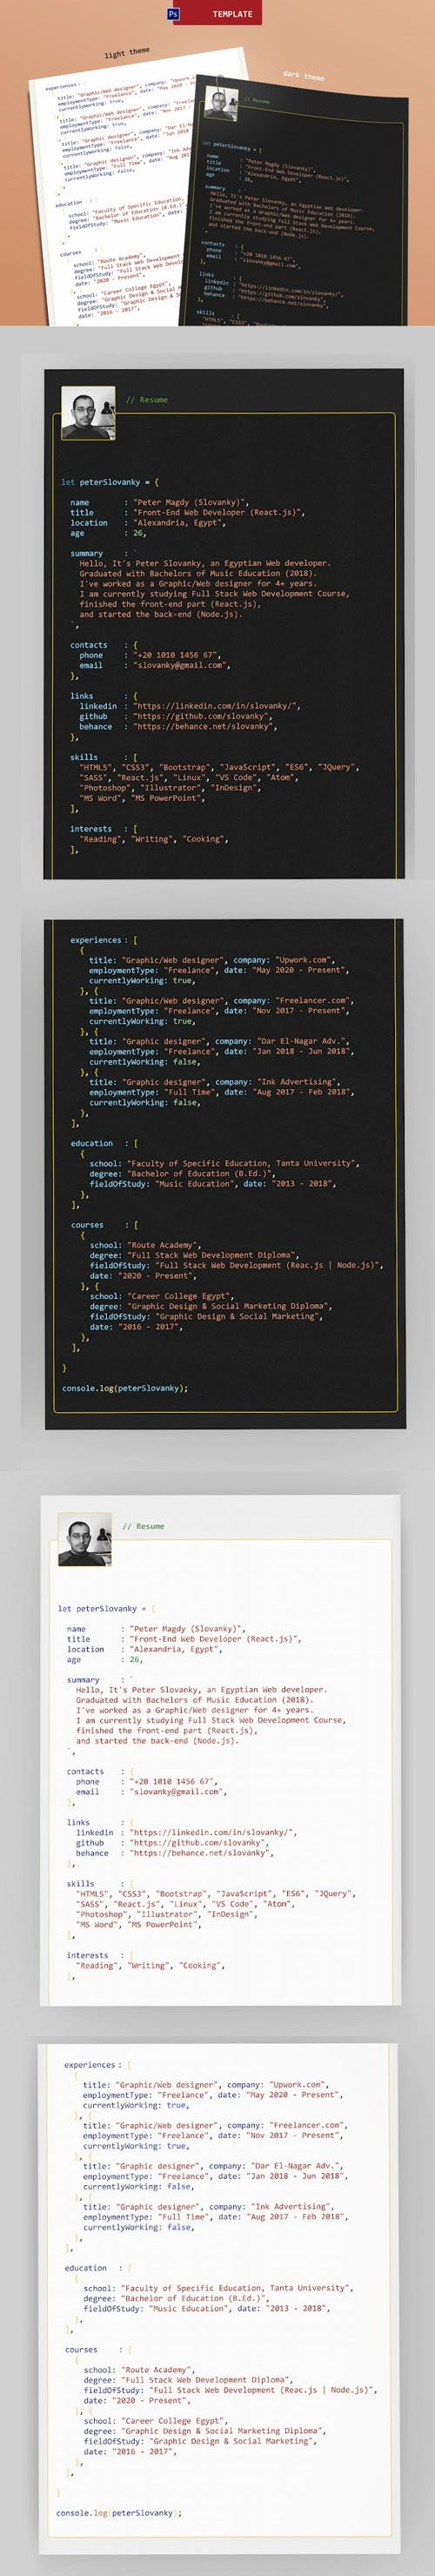 Resume CV Template for Programmers in PSD